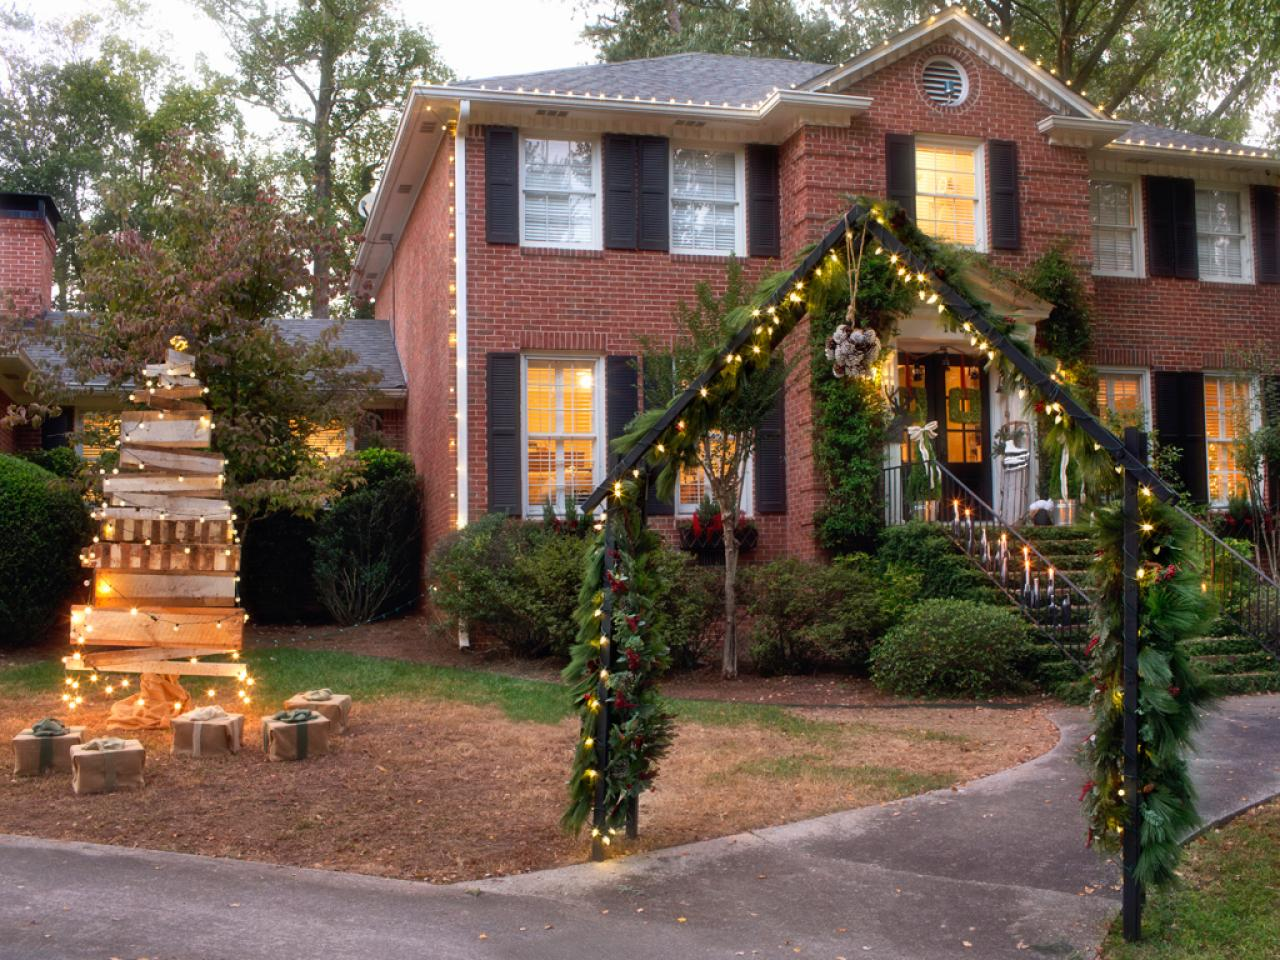 Stunning Ideas for Christmas Lights Decorations in the Garden